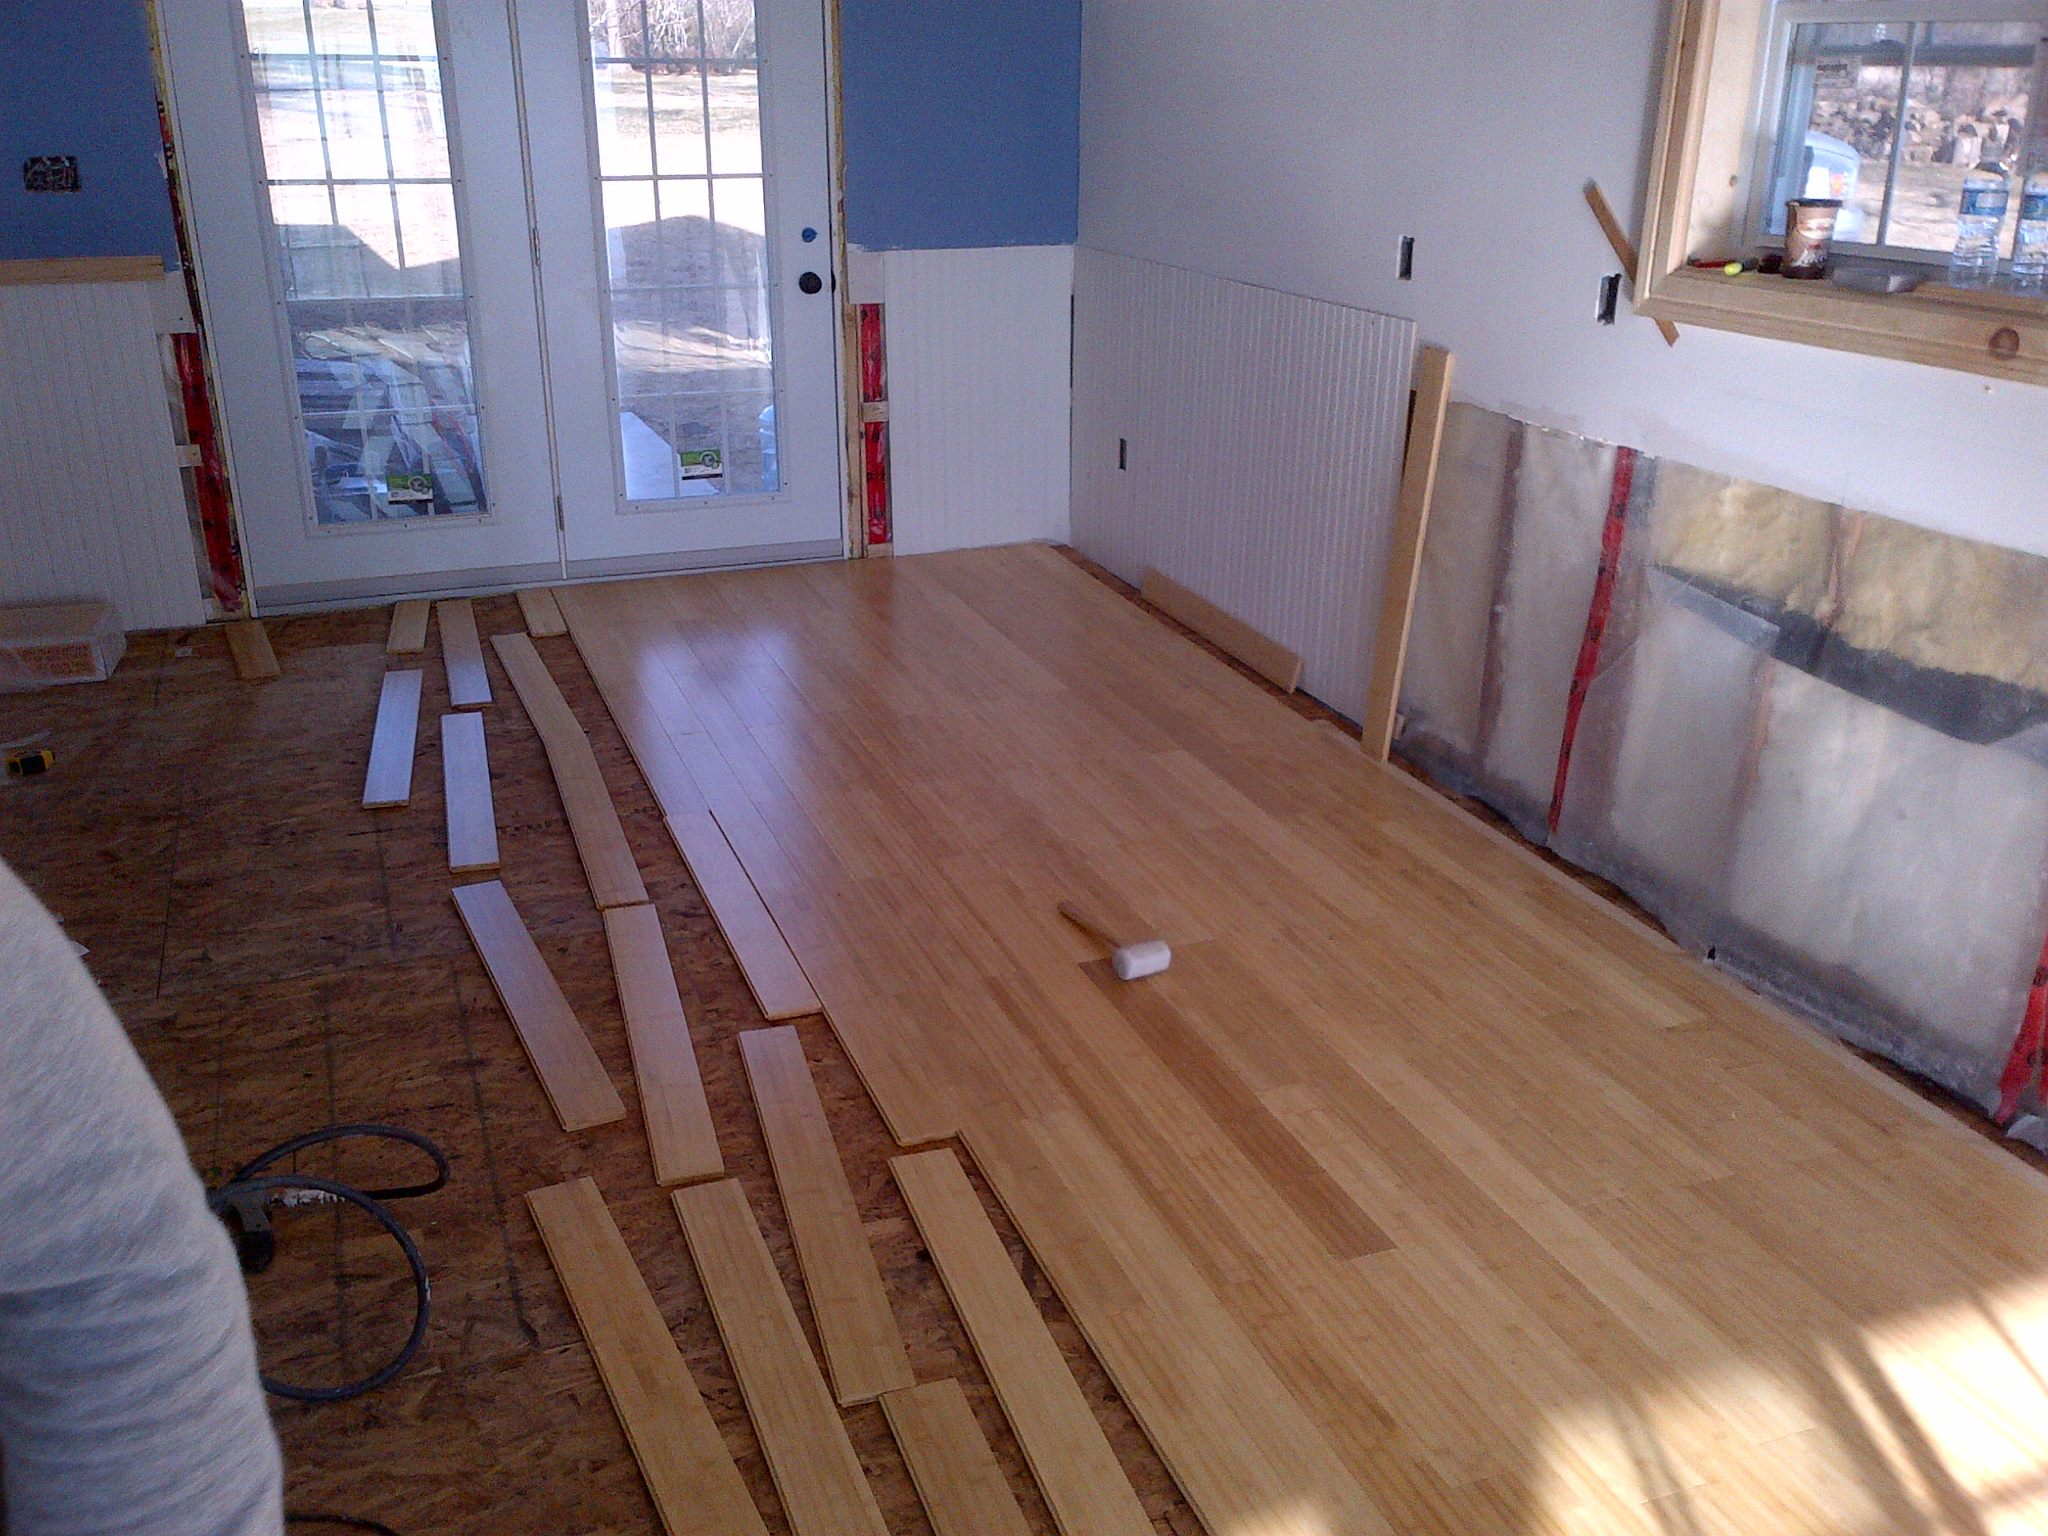 laminate ideas new nice looking best flooring for basement home design laminate in ideas new VJCHASA